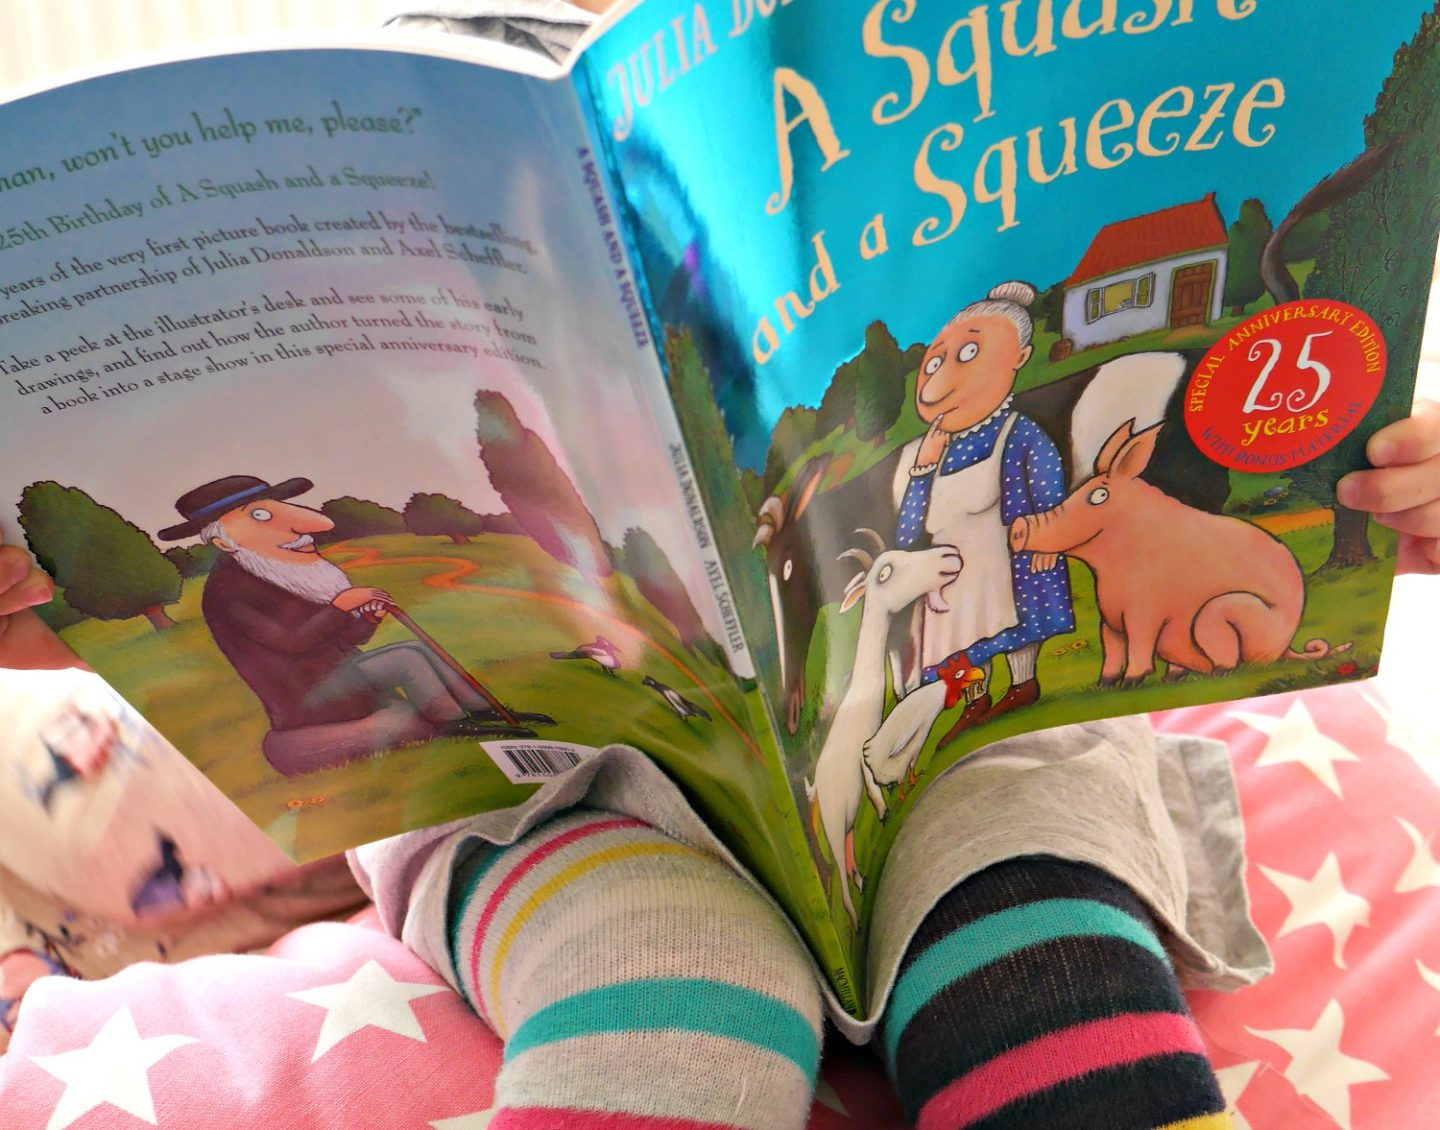 Julia Donaldson - Squash and a squeeze